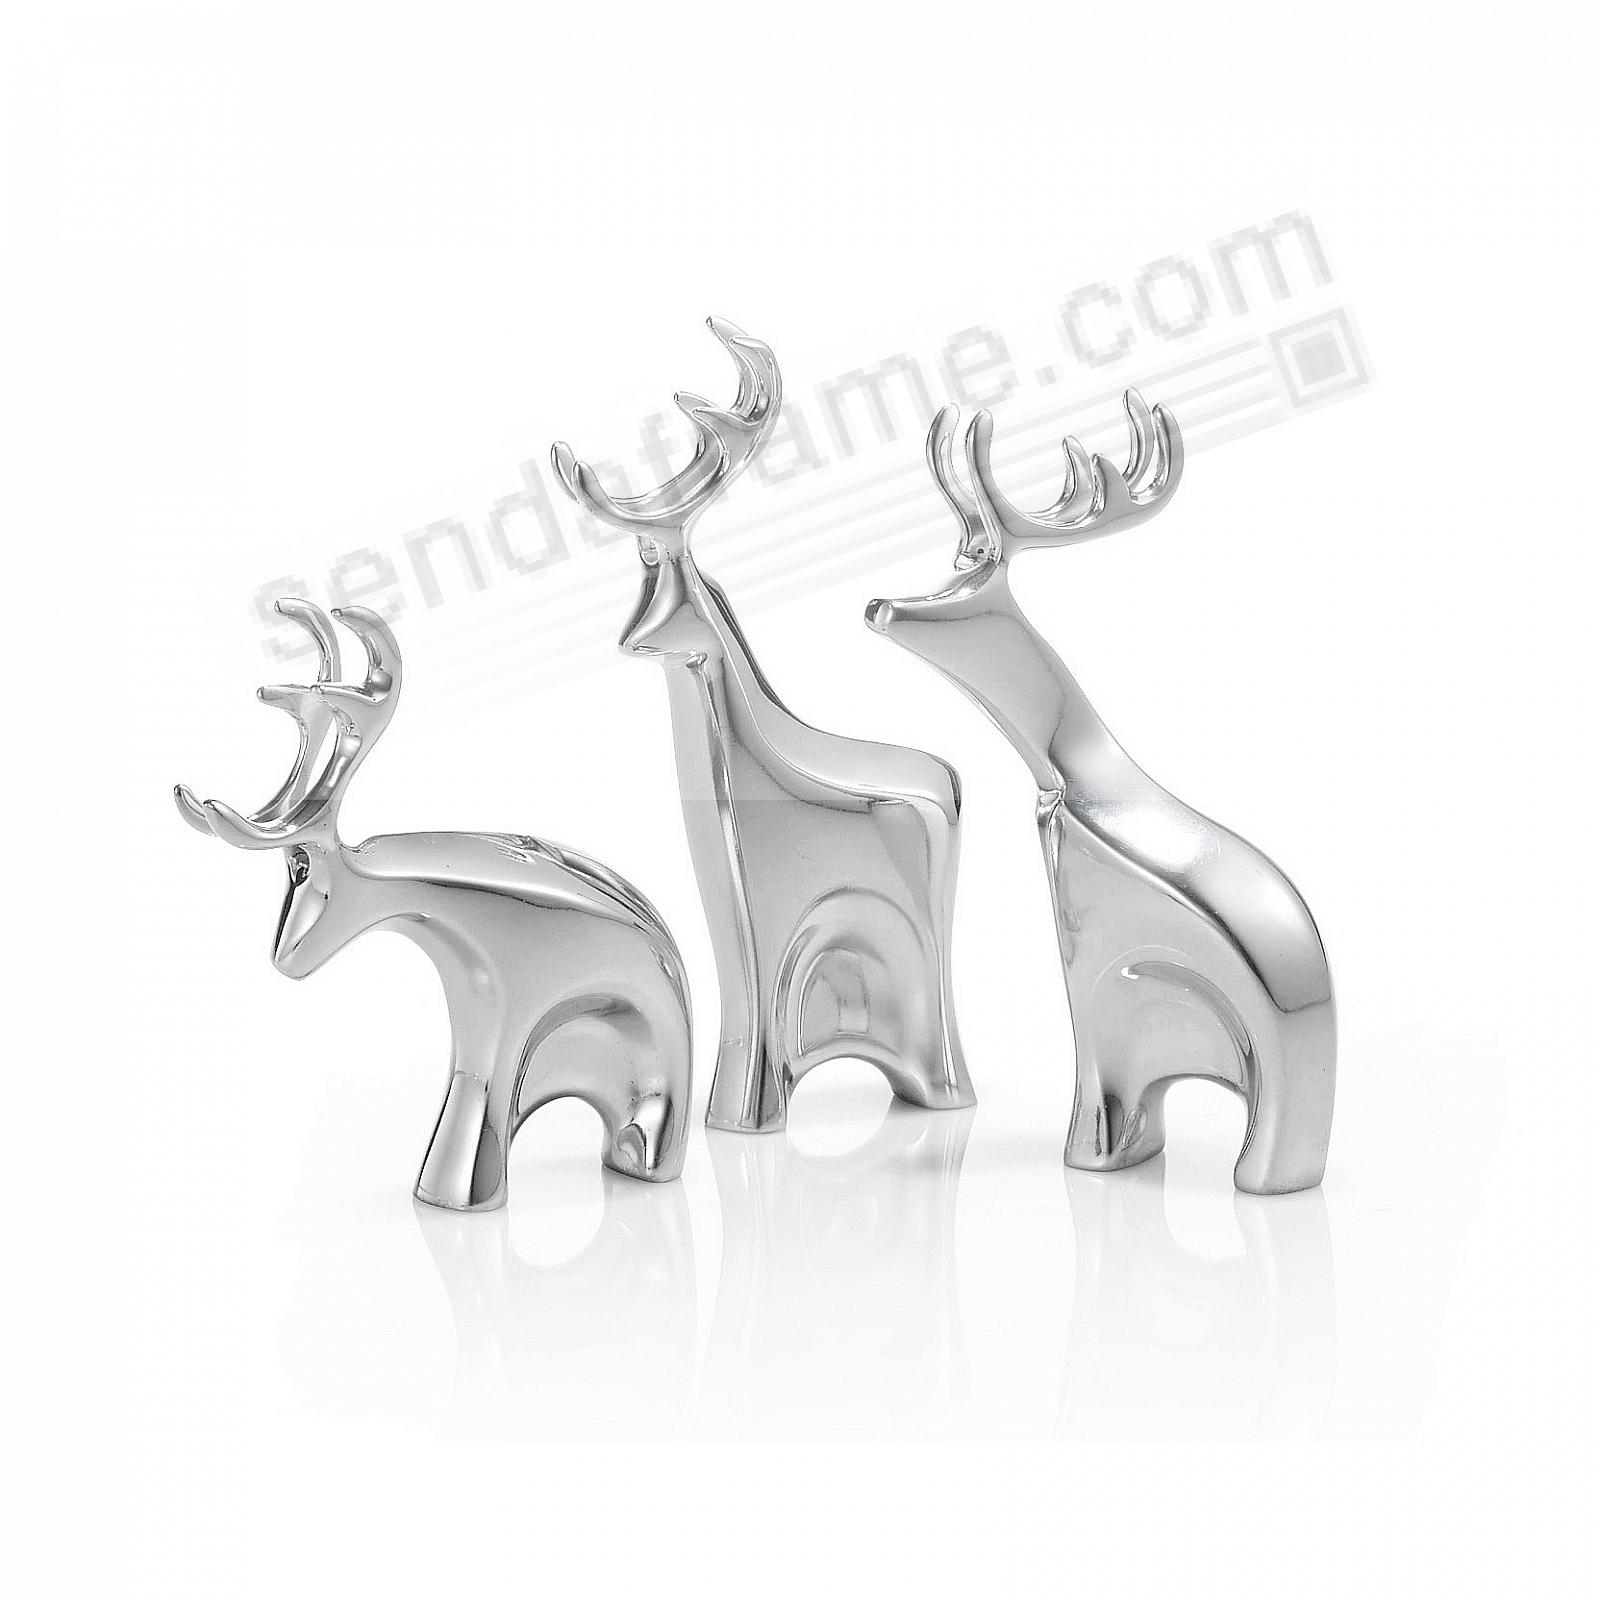 Miniature DASHER Reindeer Figurine Set crafted by Nambe®